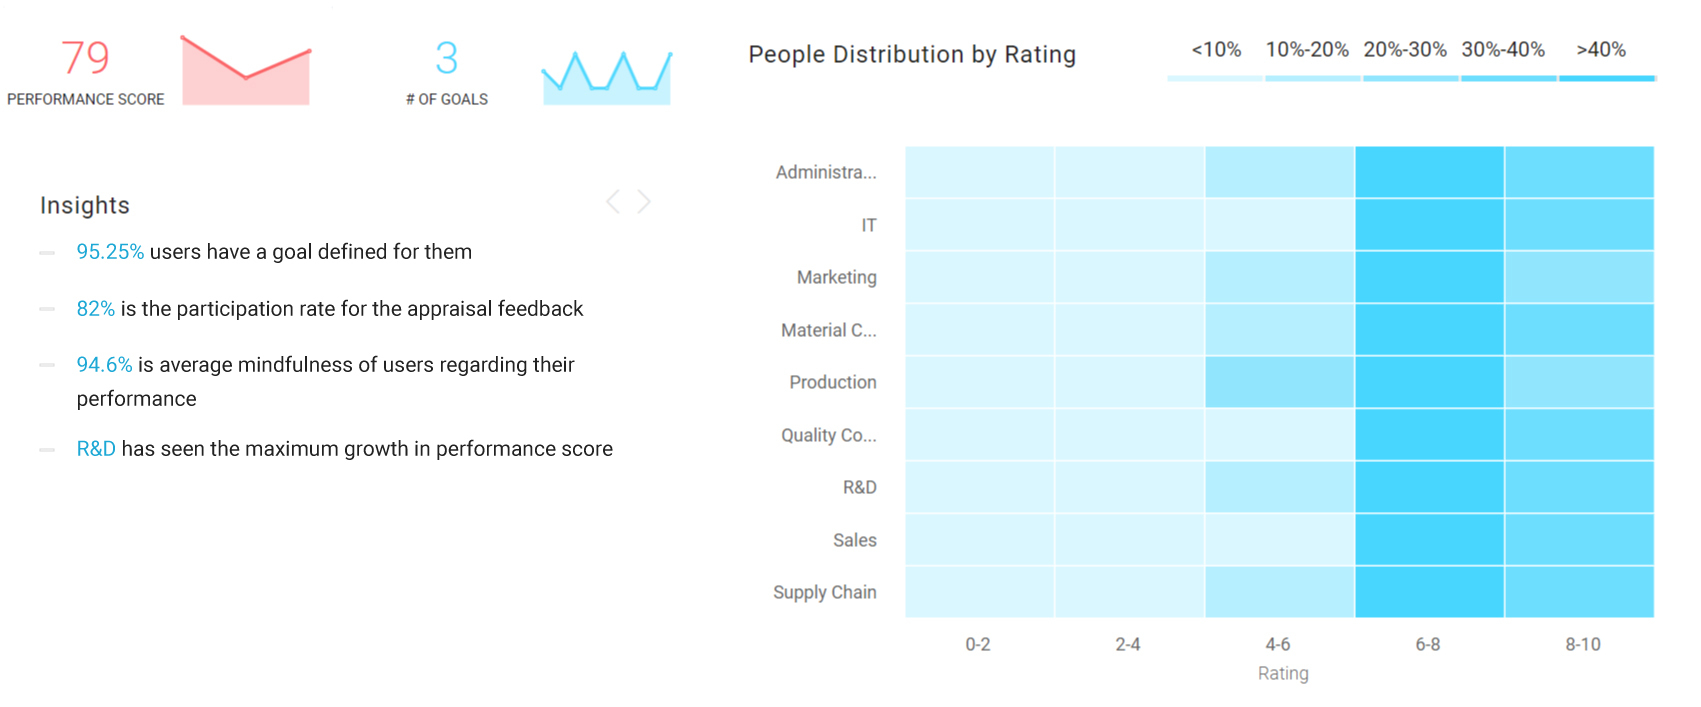 HR Analytics software -Performance Dashboard